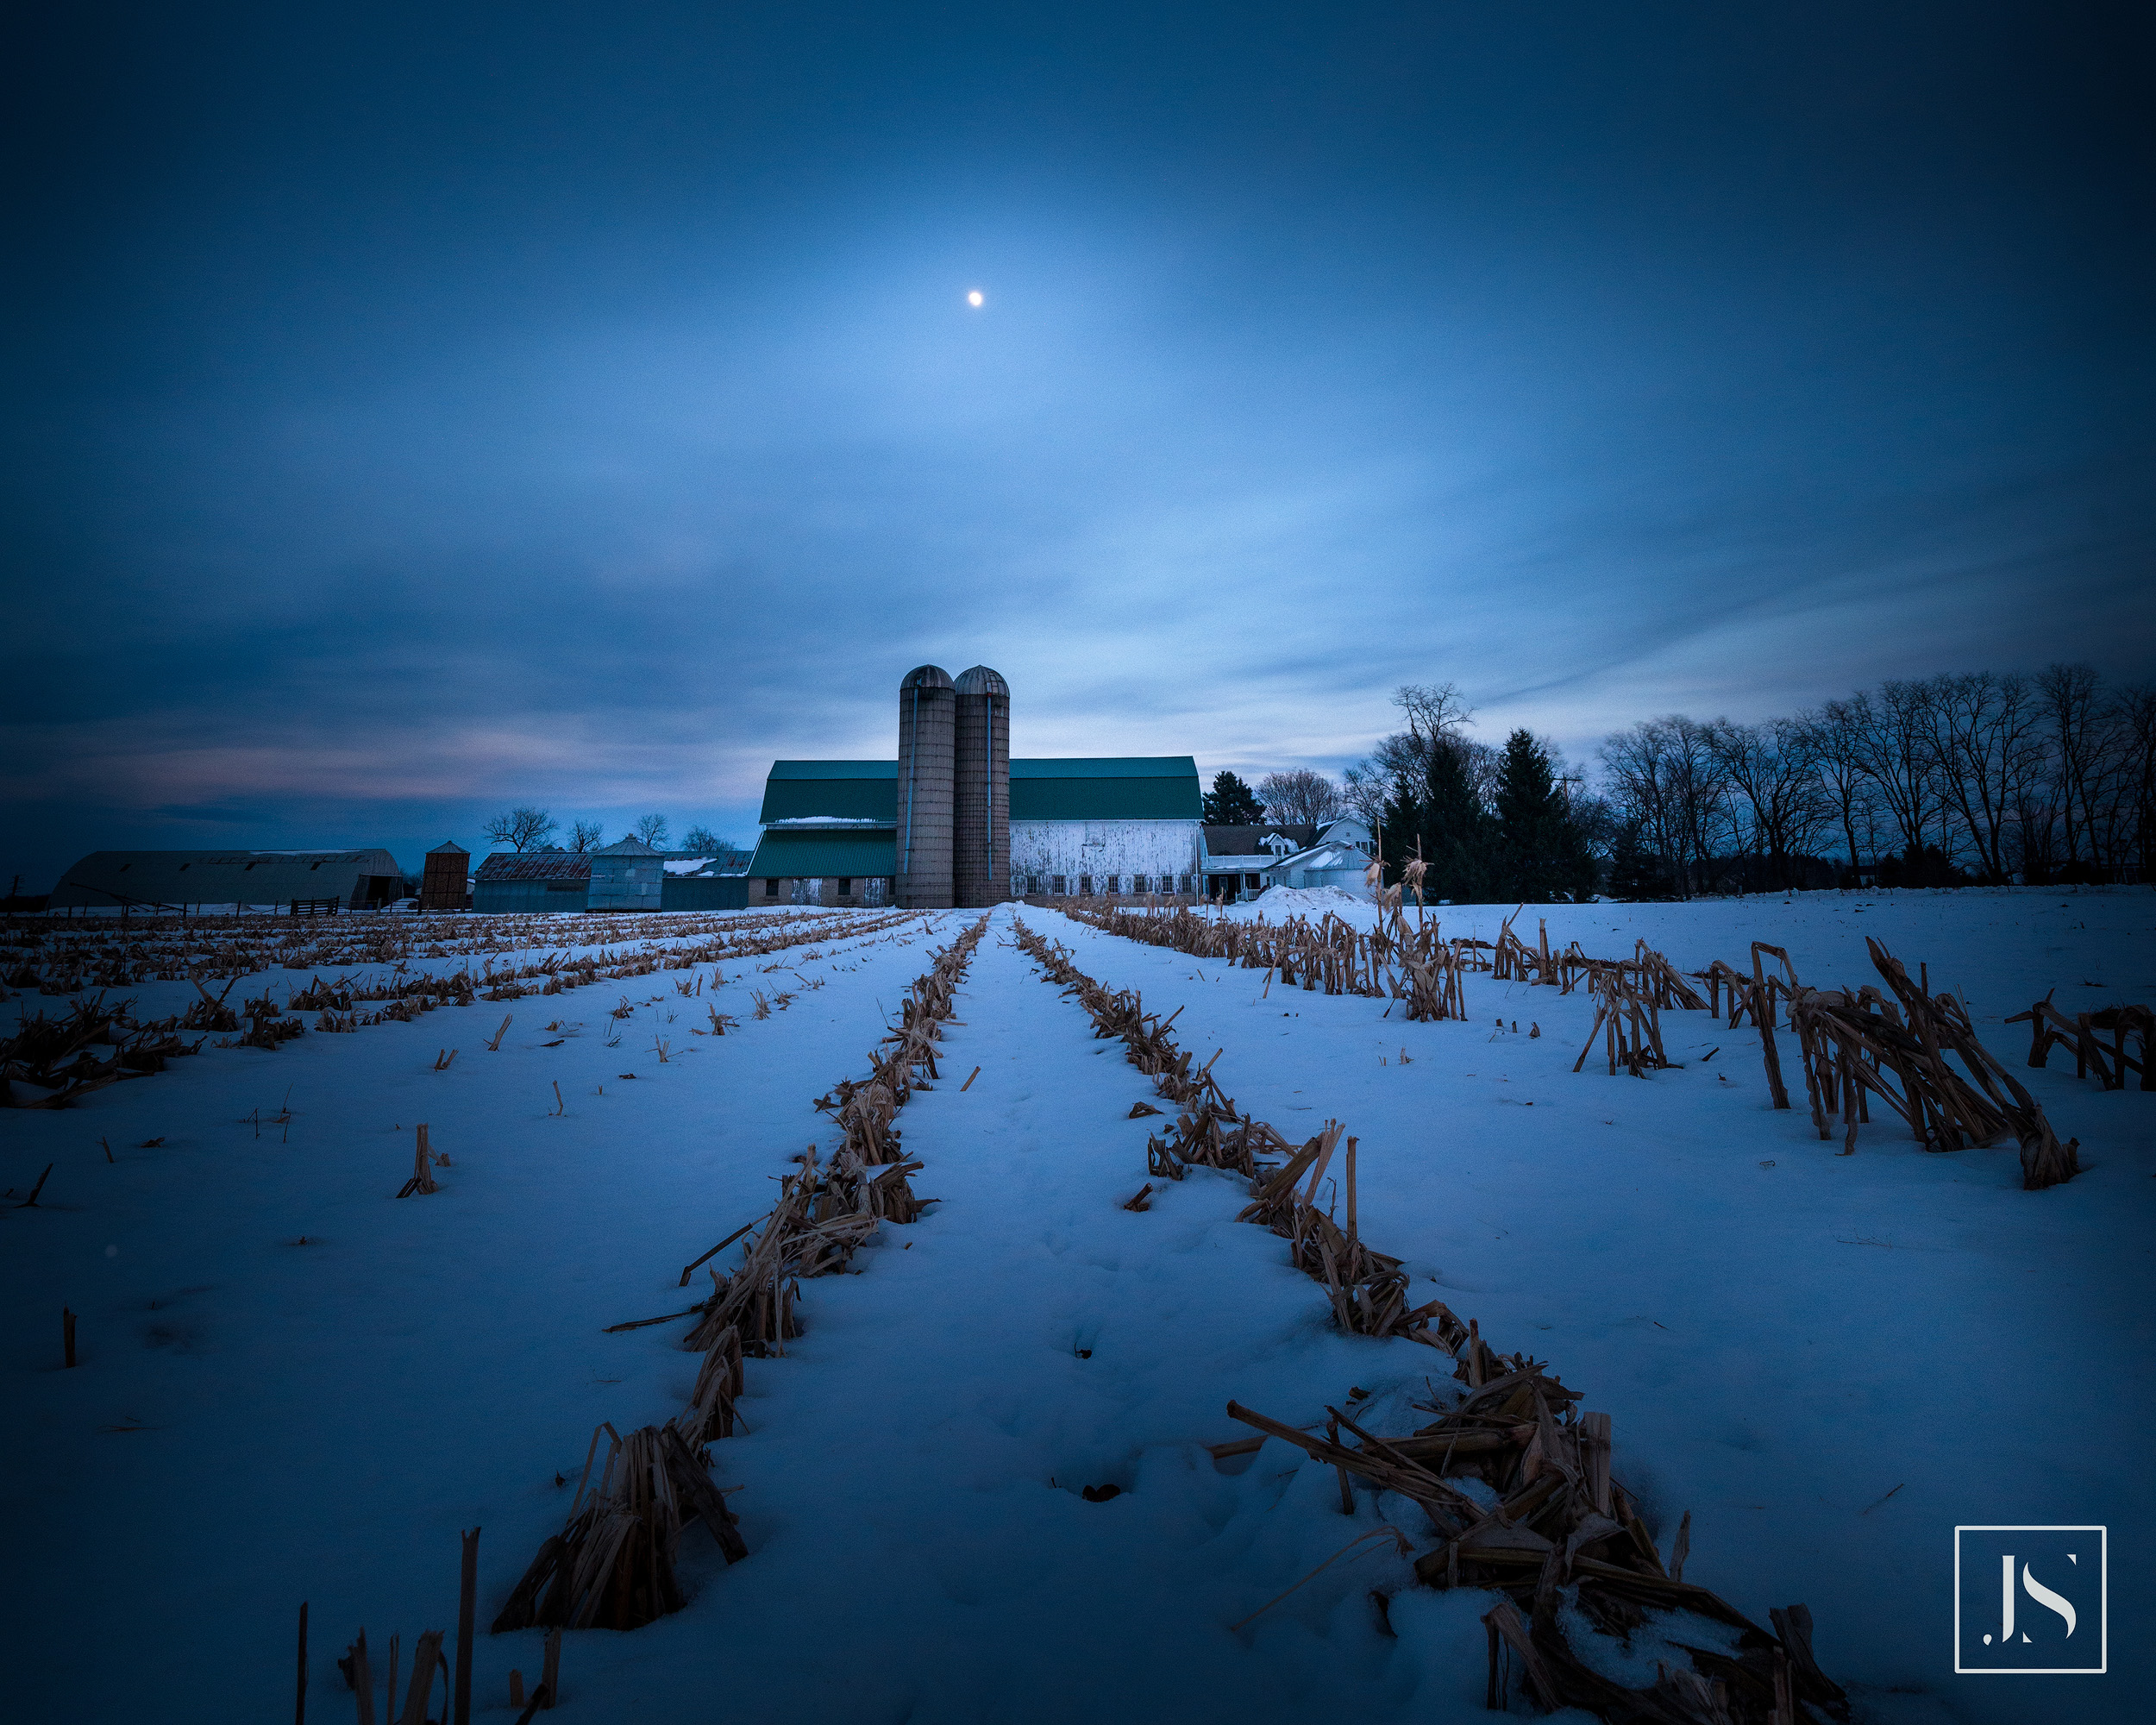 Moonlit Farm-Delafield, WI